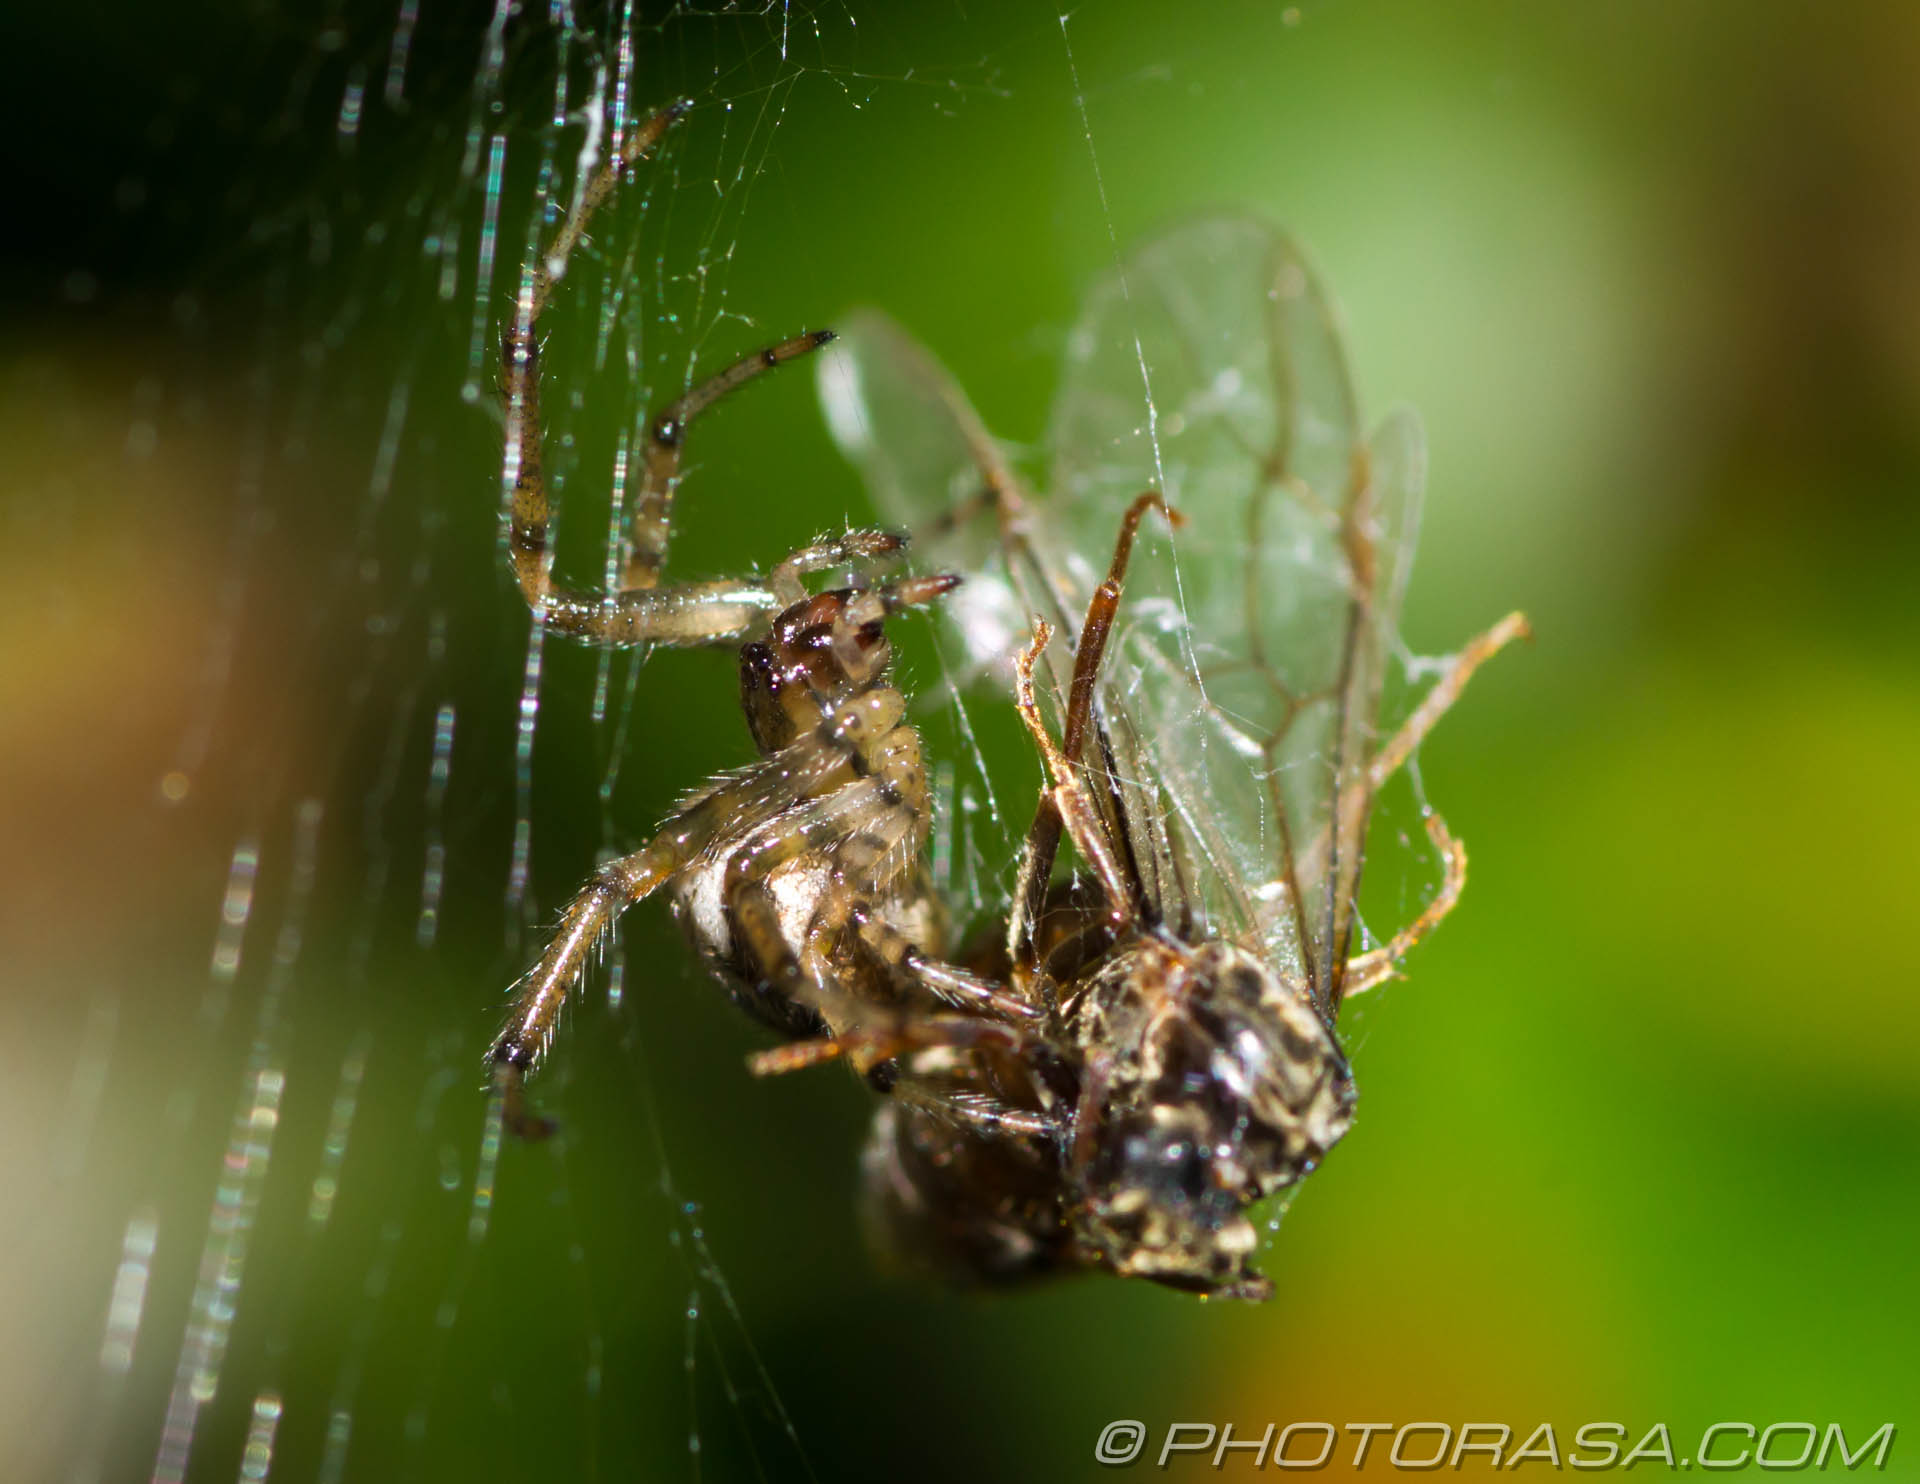 http://photorasa.com/spider-trapping-wrapping-fly/walking-across/